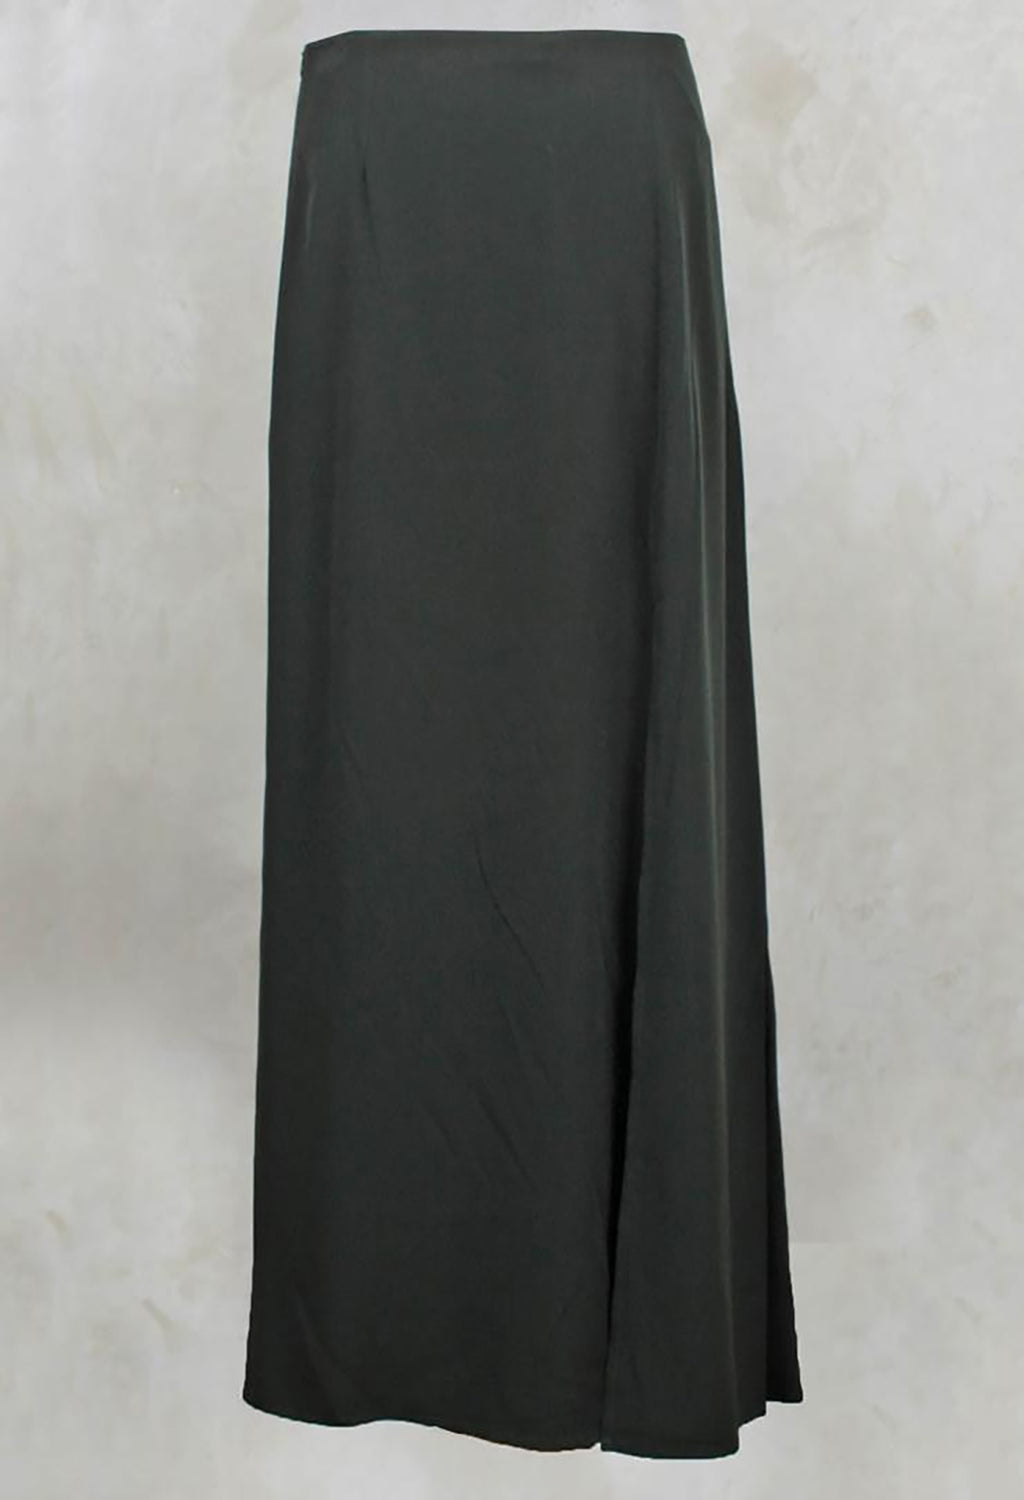 Long Length Skirt with Split in Khaki